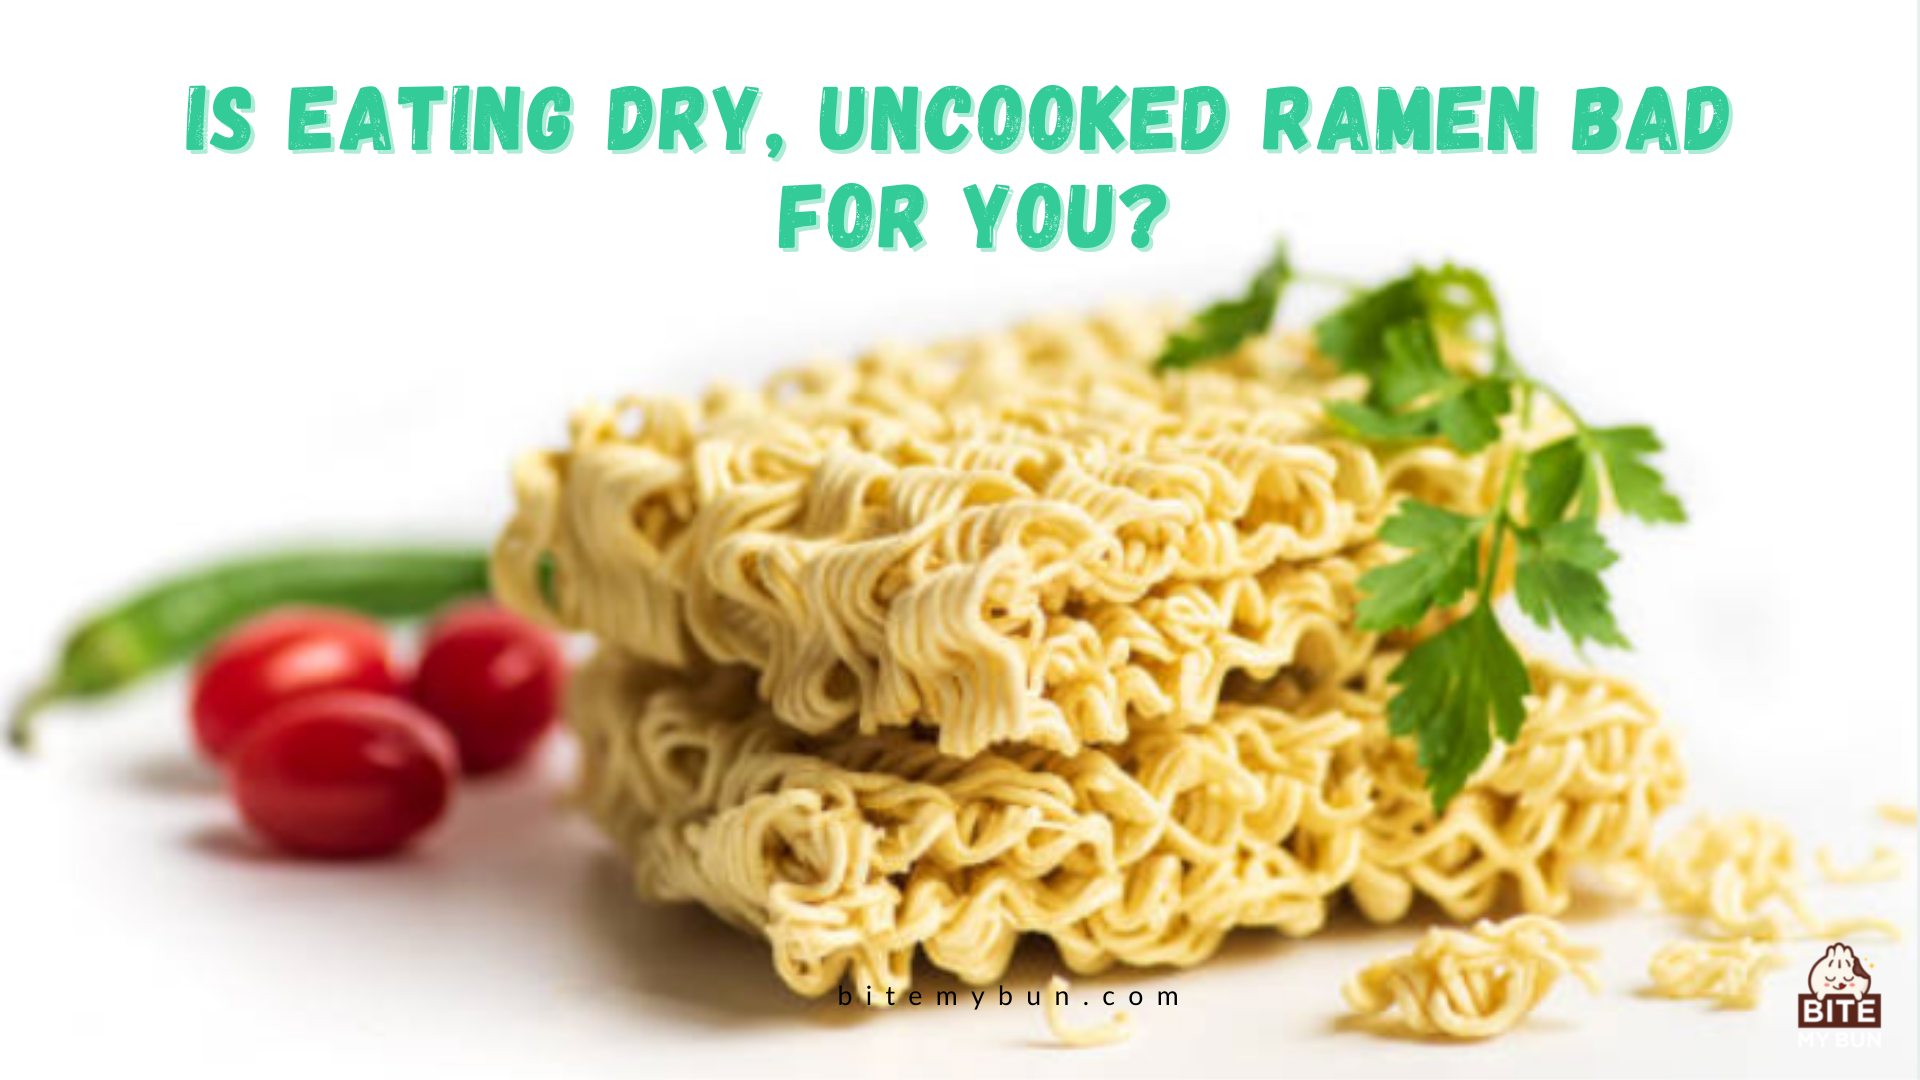 Is eating dry, uncooked ramen bad for you? Here's the good news